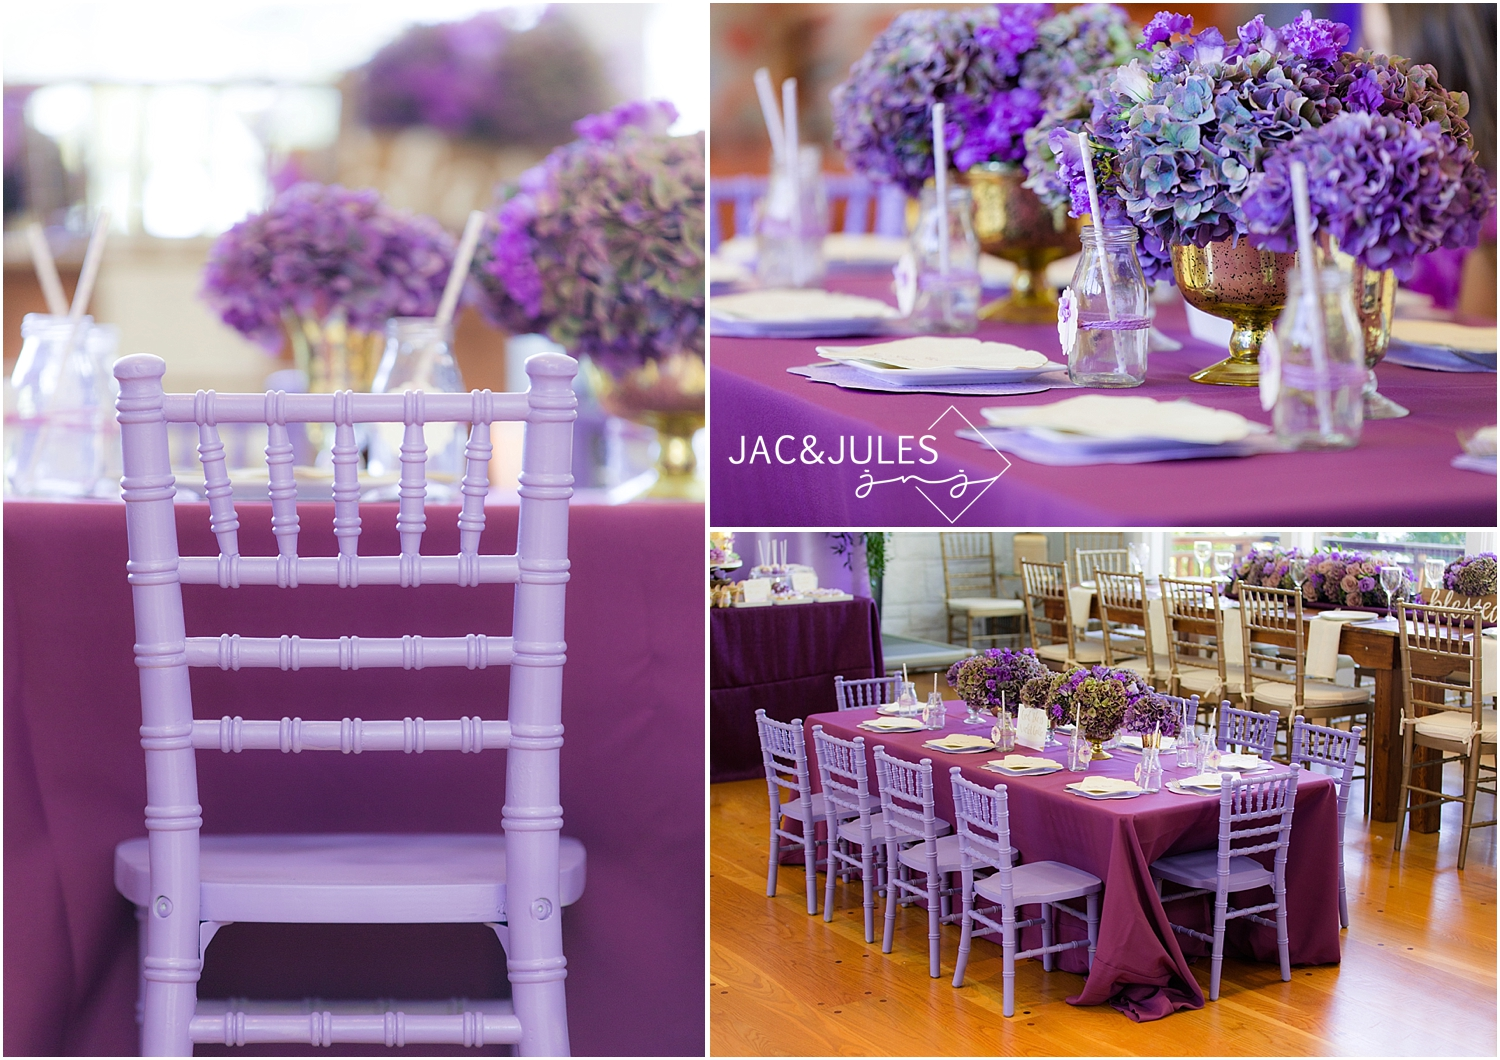 jacnjules photographs a purple and gold themed party in Irvington NY for The Party Muse